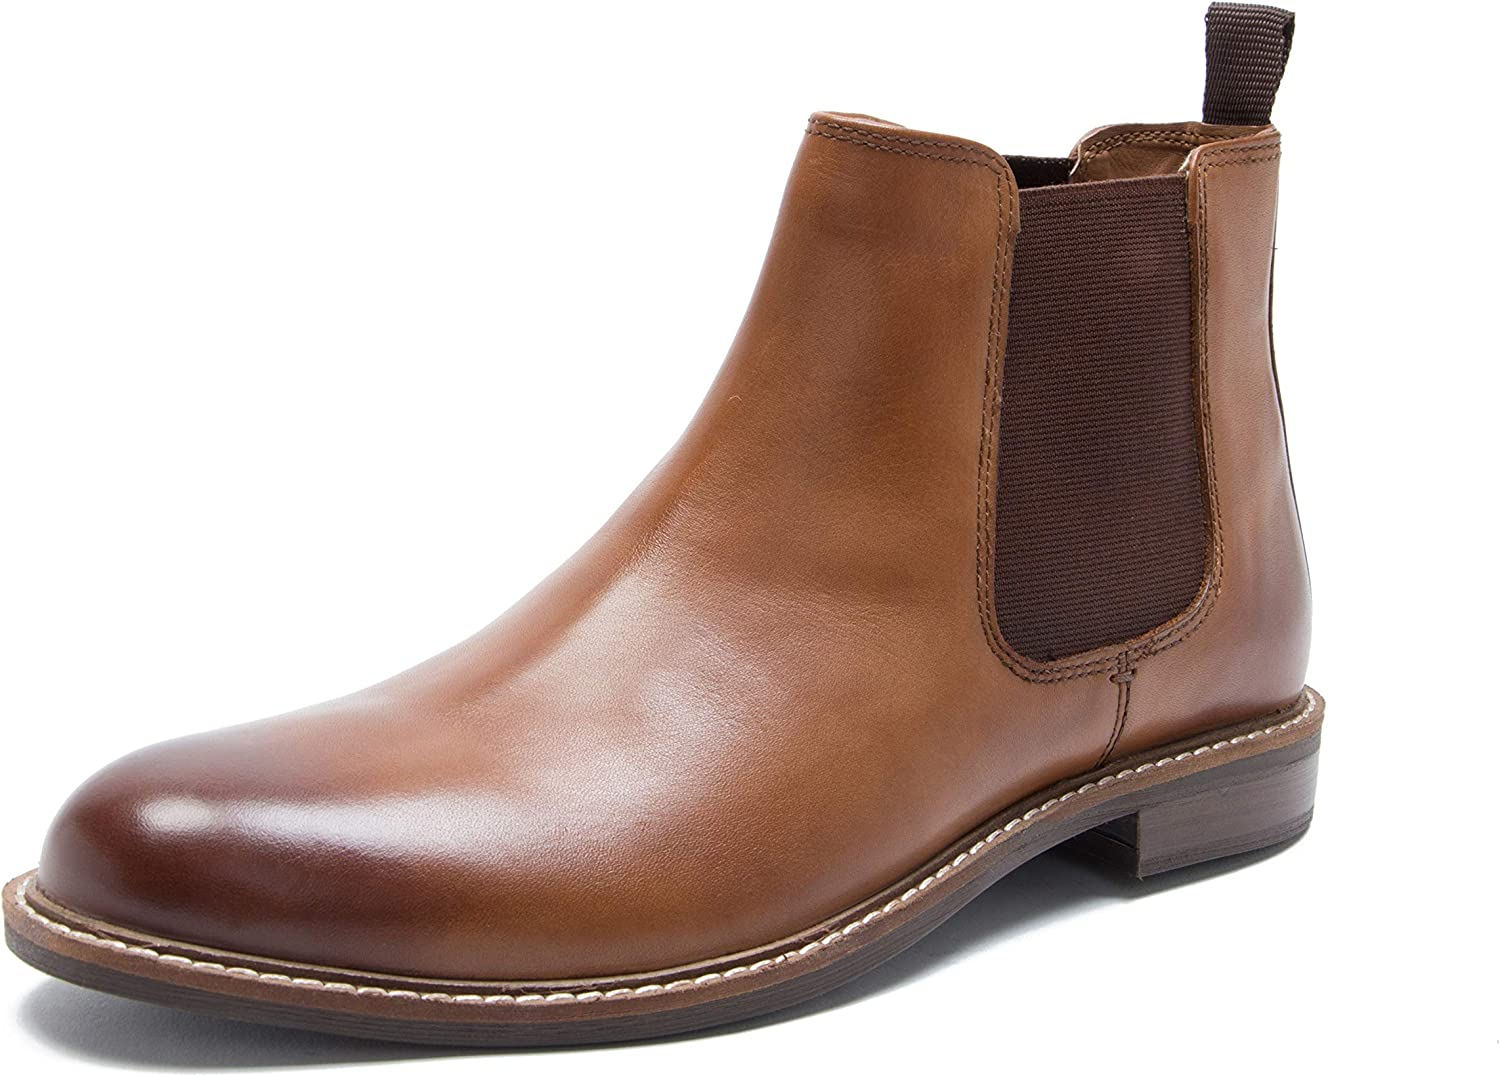 Red Tape Men's Chelsea Max Spring new work one after another 82% OFF Boots